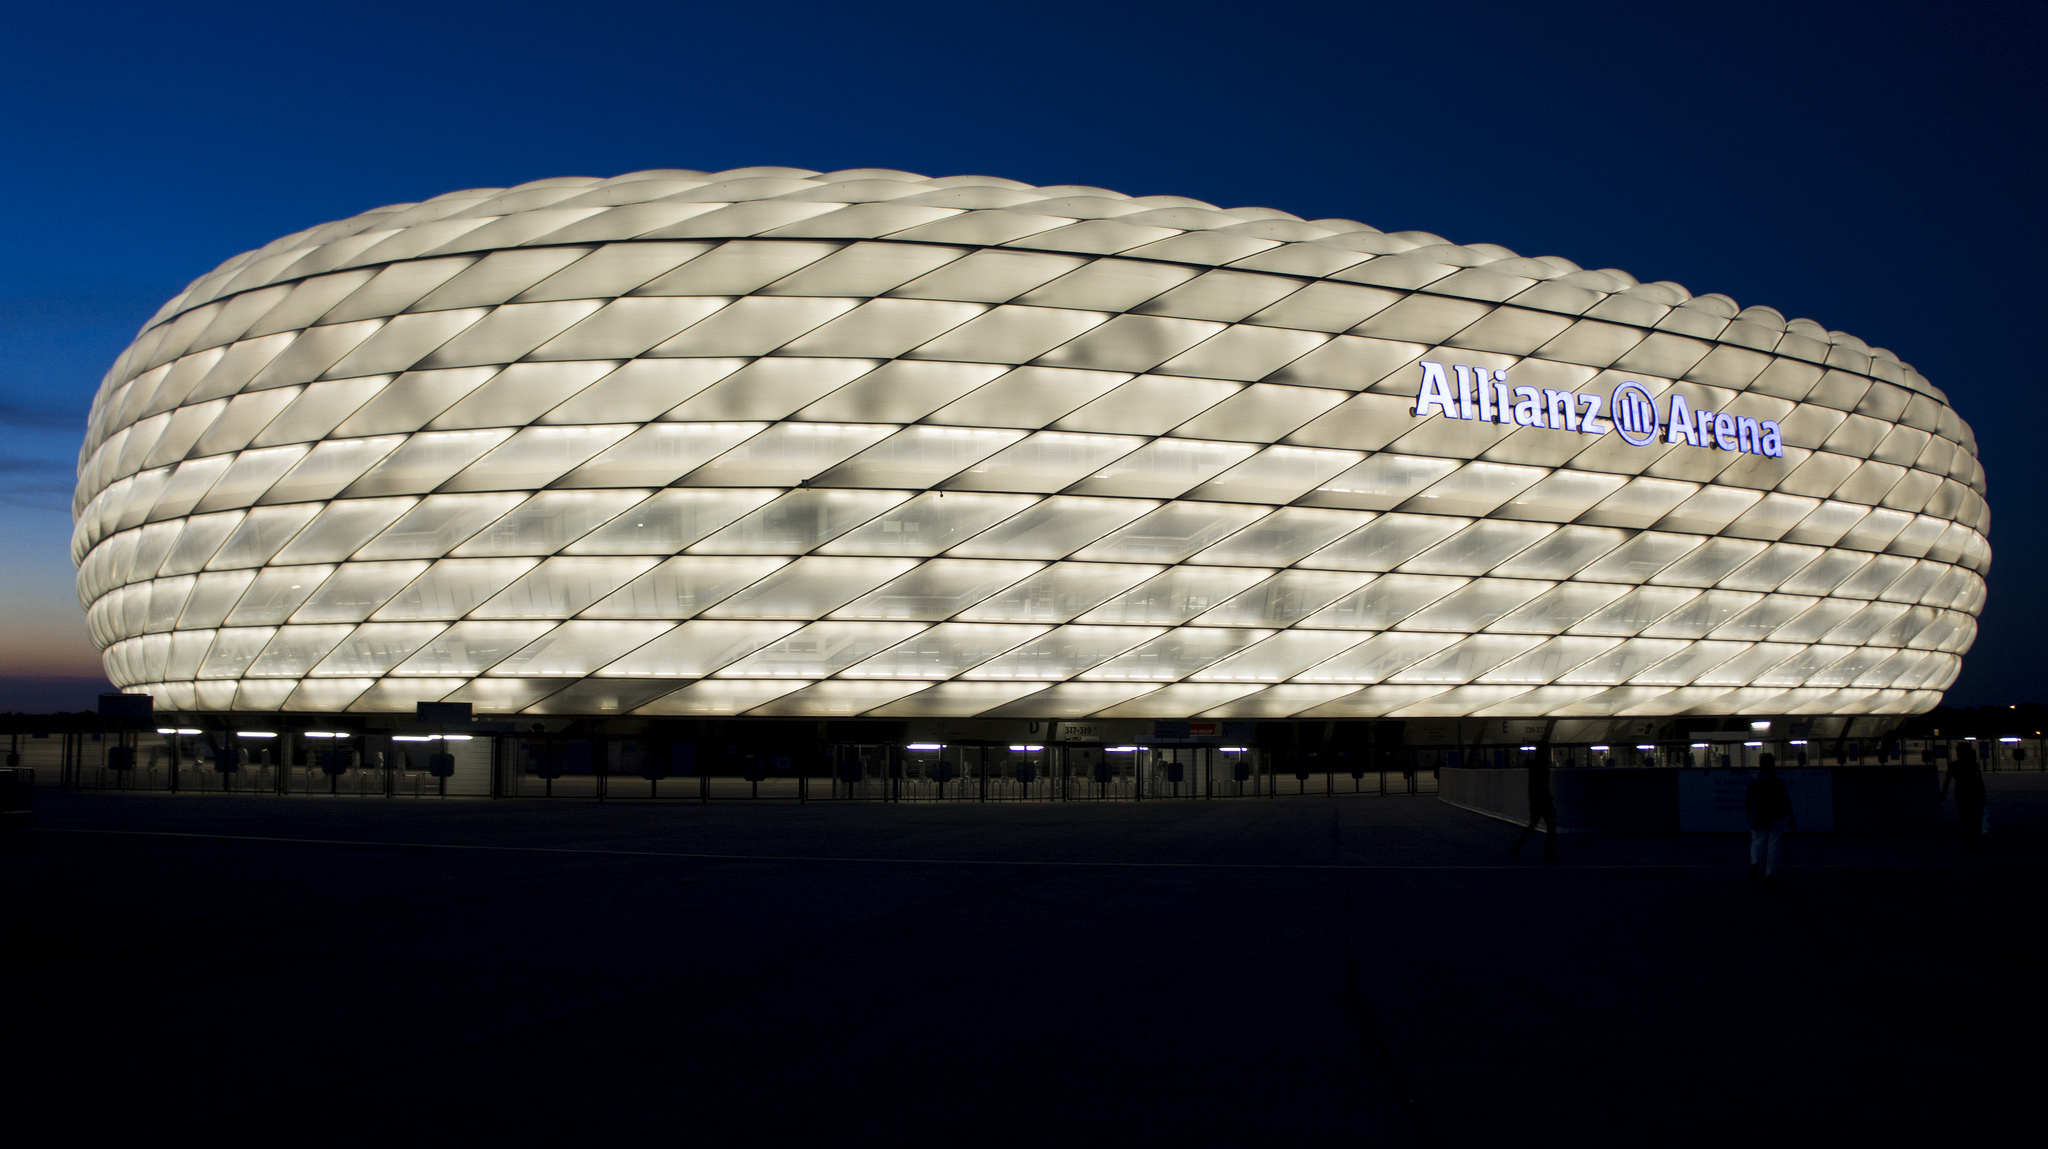 allianz arena stadium in munich thousand wonders. Black Bedroom Furniture Sets. Home Design Ideas